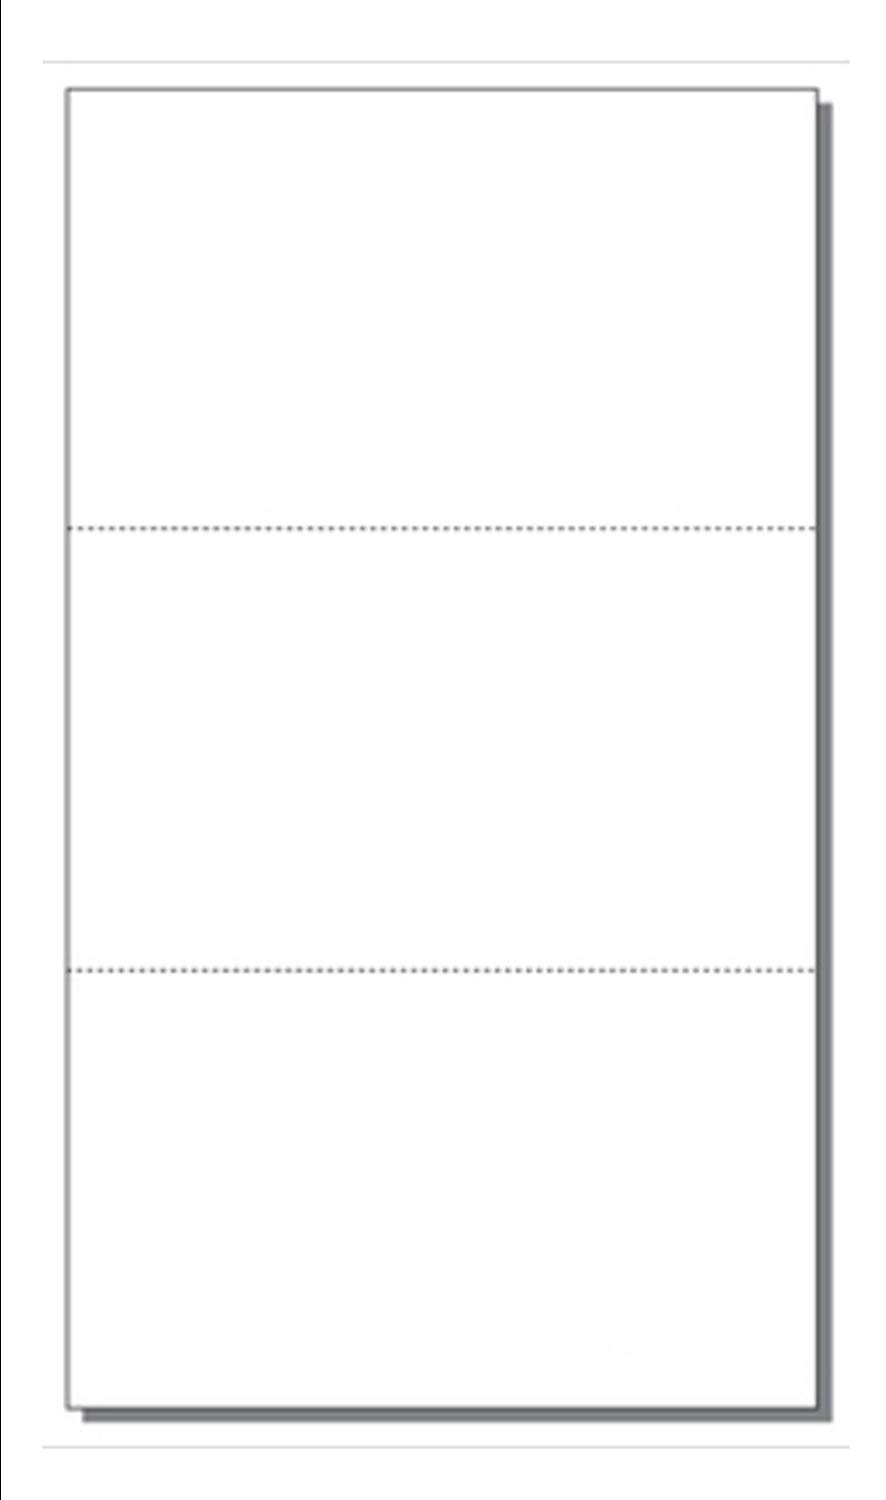 """Print-Ready Post Card (3-1/2"""" x 6""""), 3-UP, Perfed on 6"""" x 10-1/2"""" White 65lb Cover Paper - 250 Sheets (750 Post Cards)"""